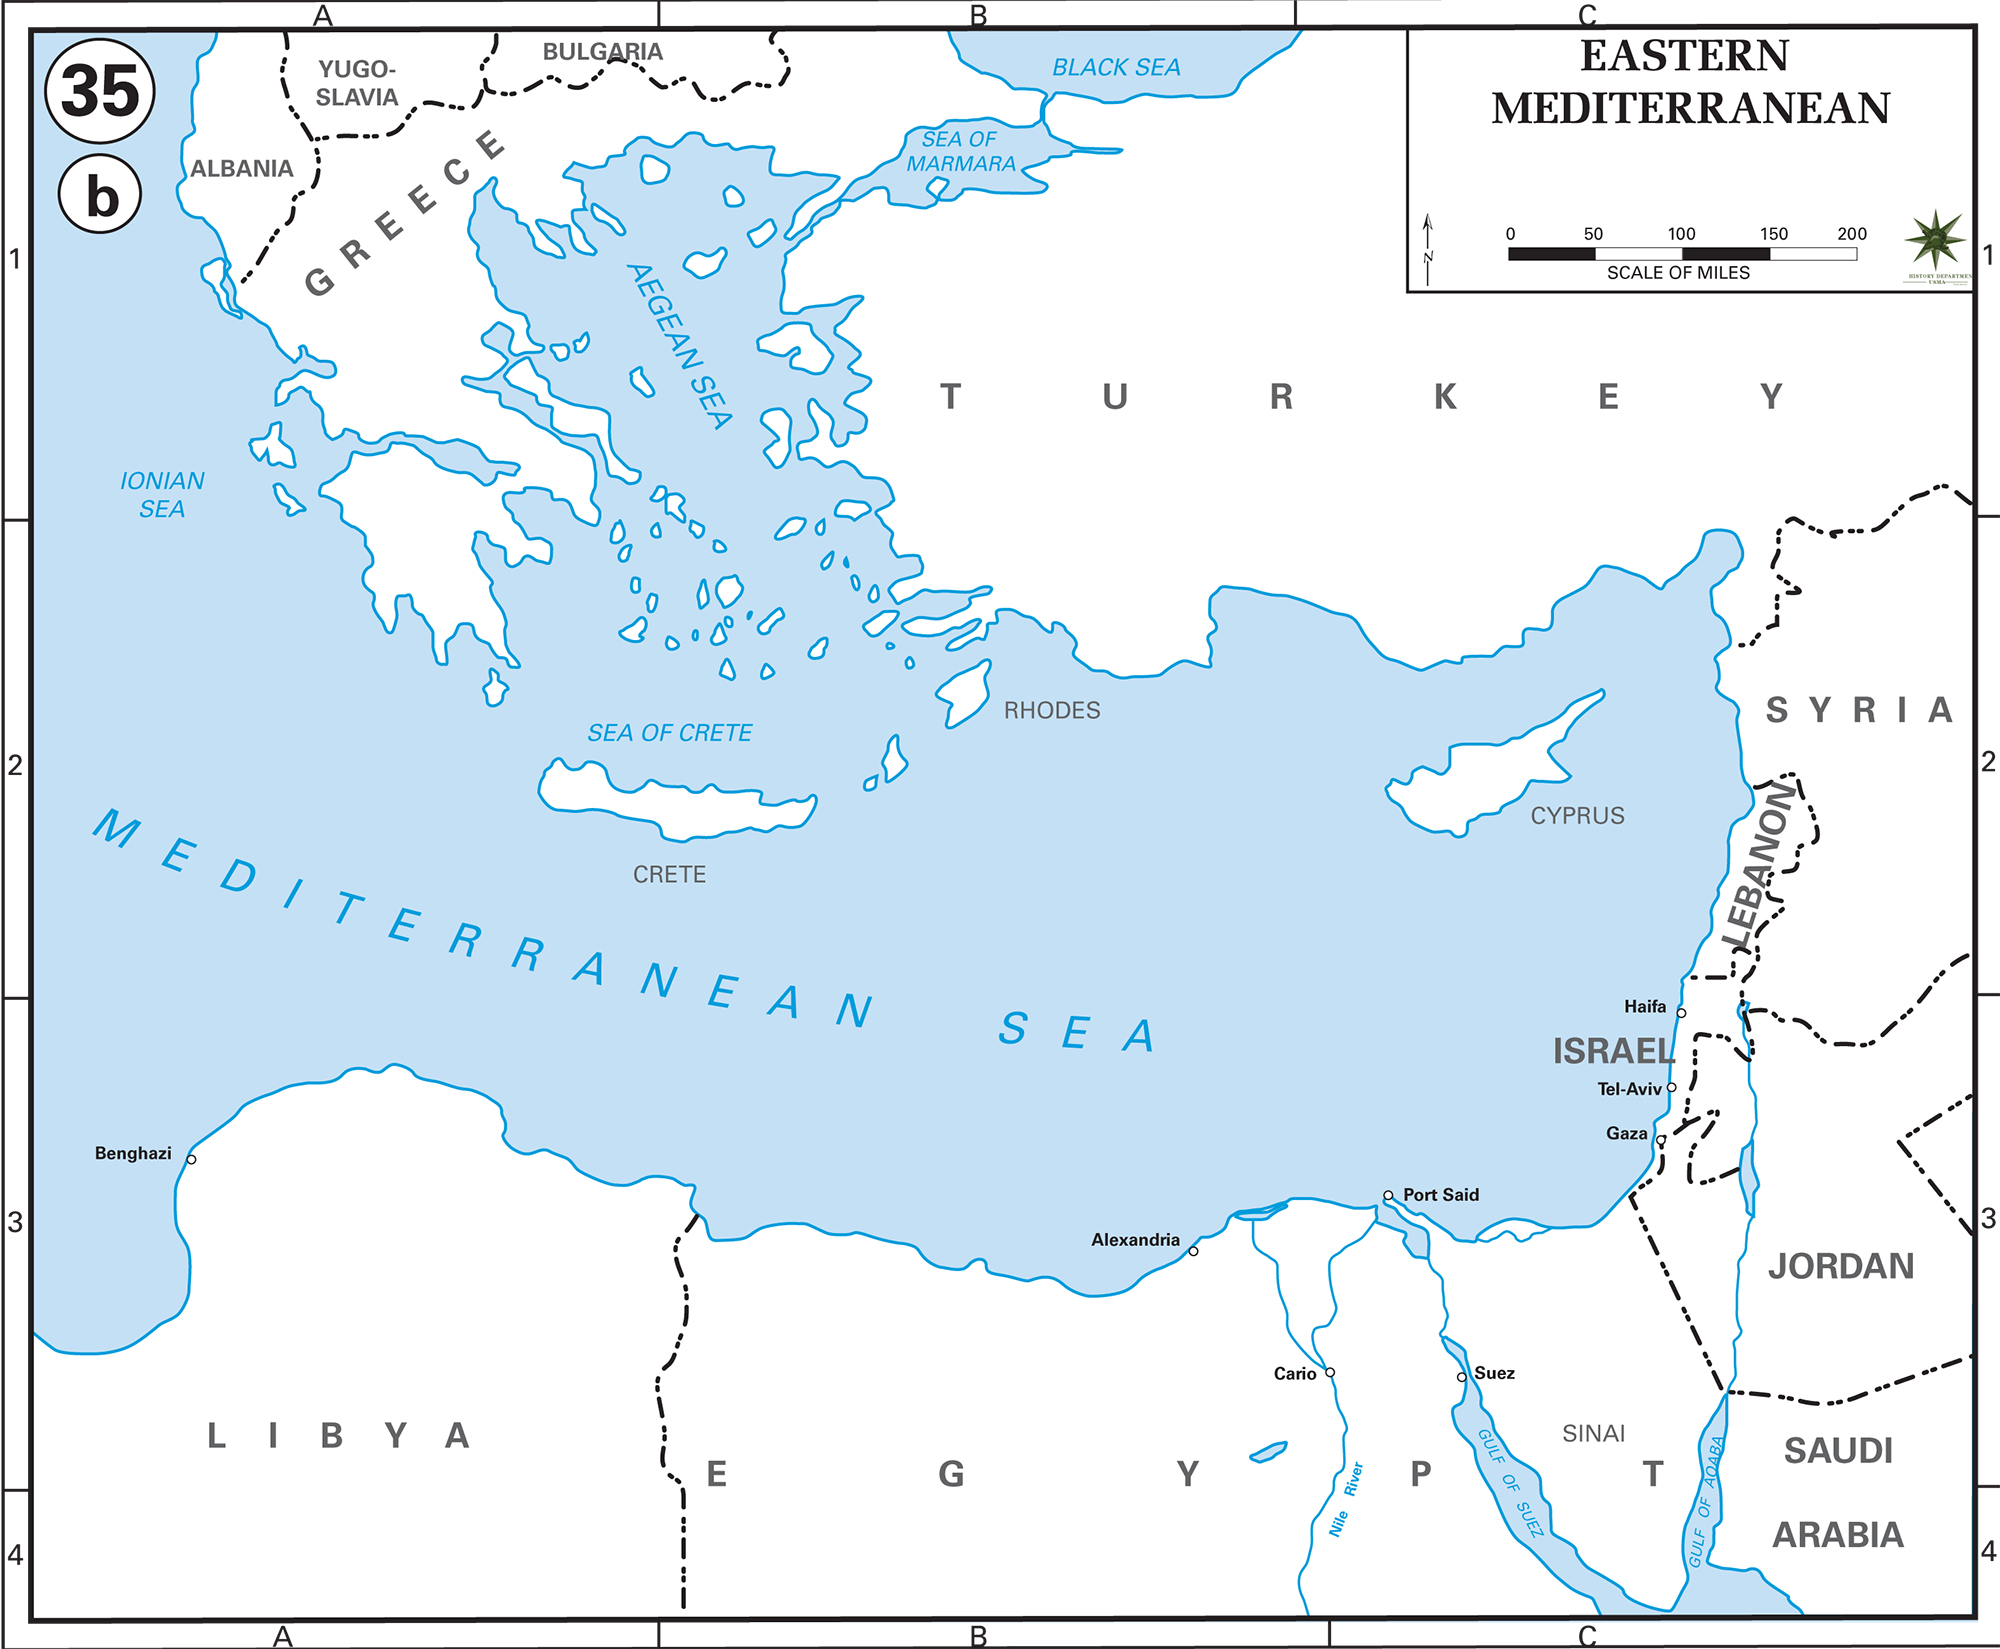 Map of Eastern Mediterranean Countries